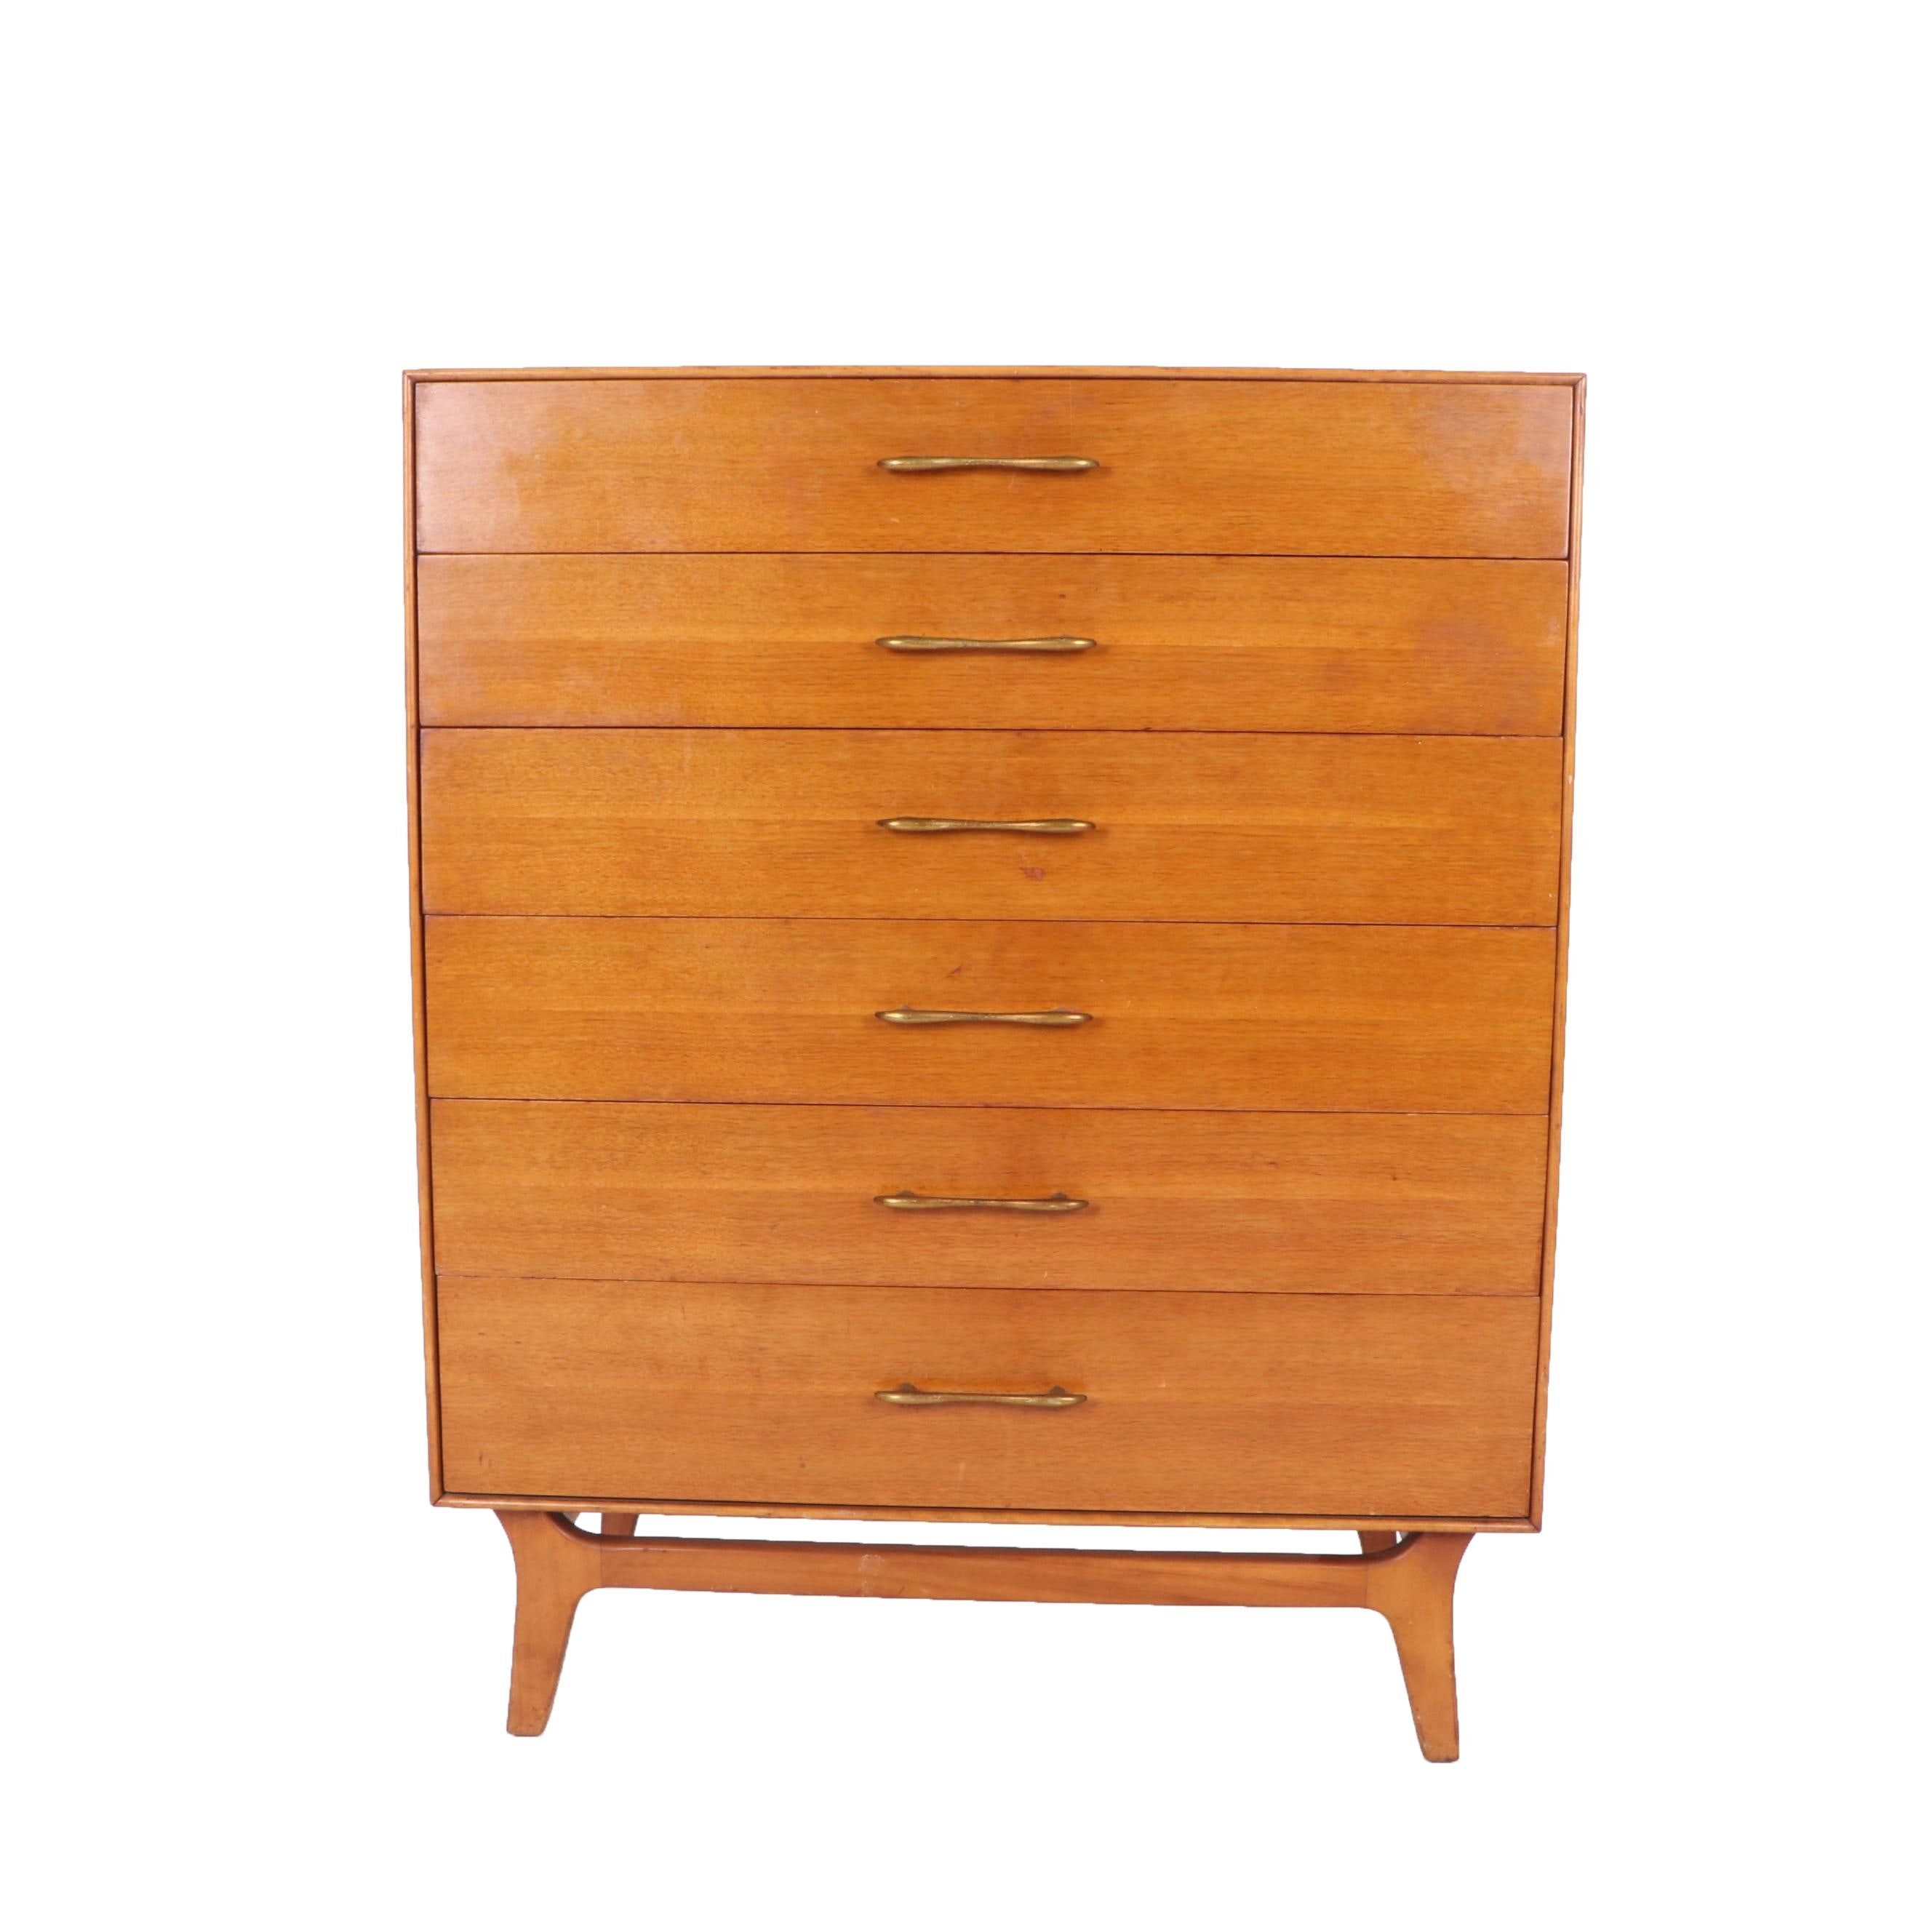 Mid Century Modern Teak Chest of Drawers by RWay, Mid-20th Century